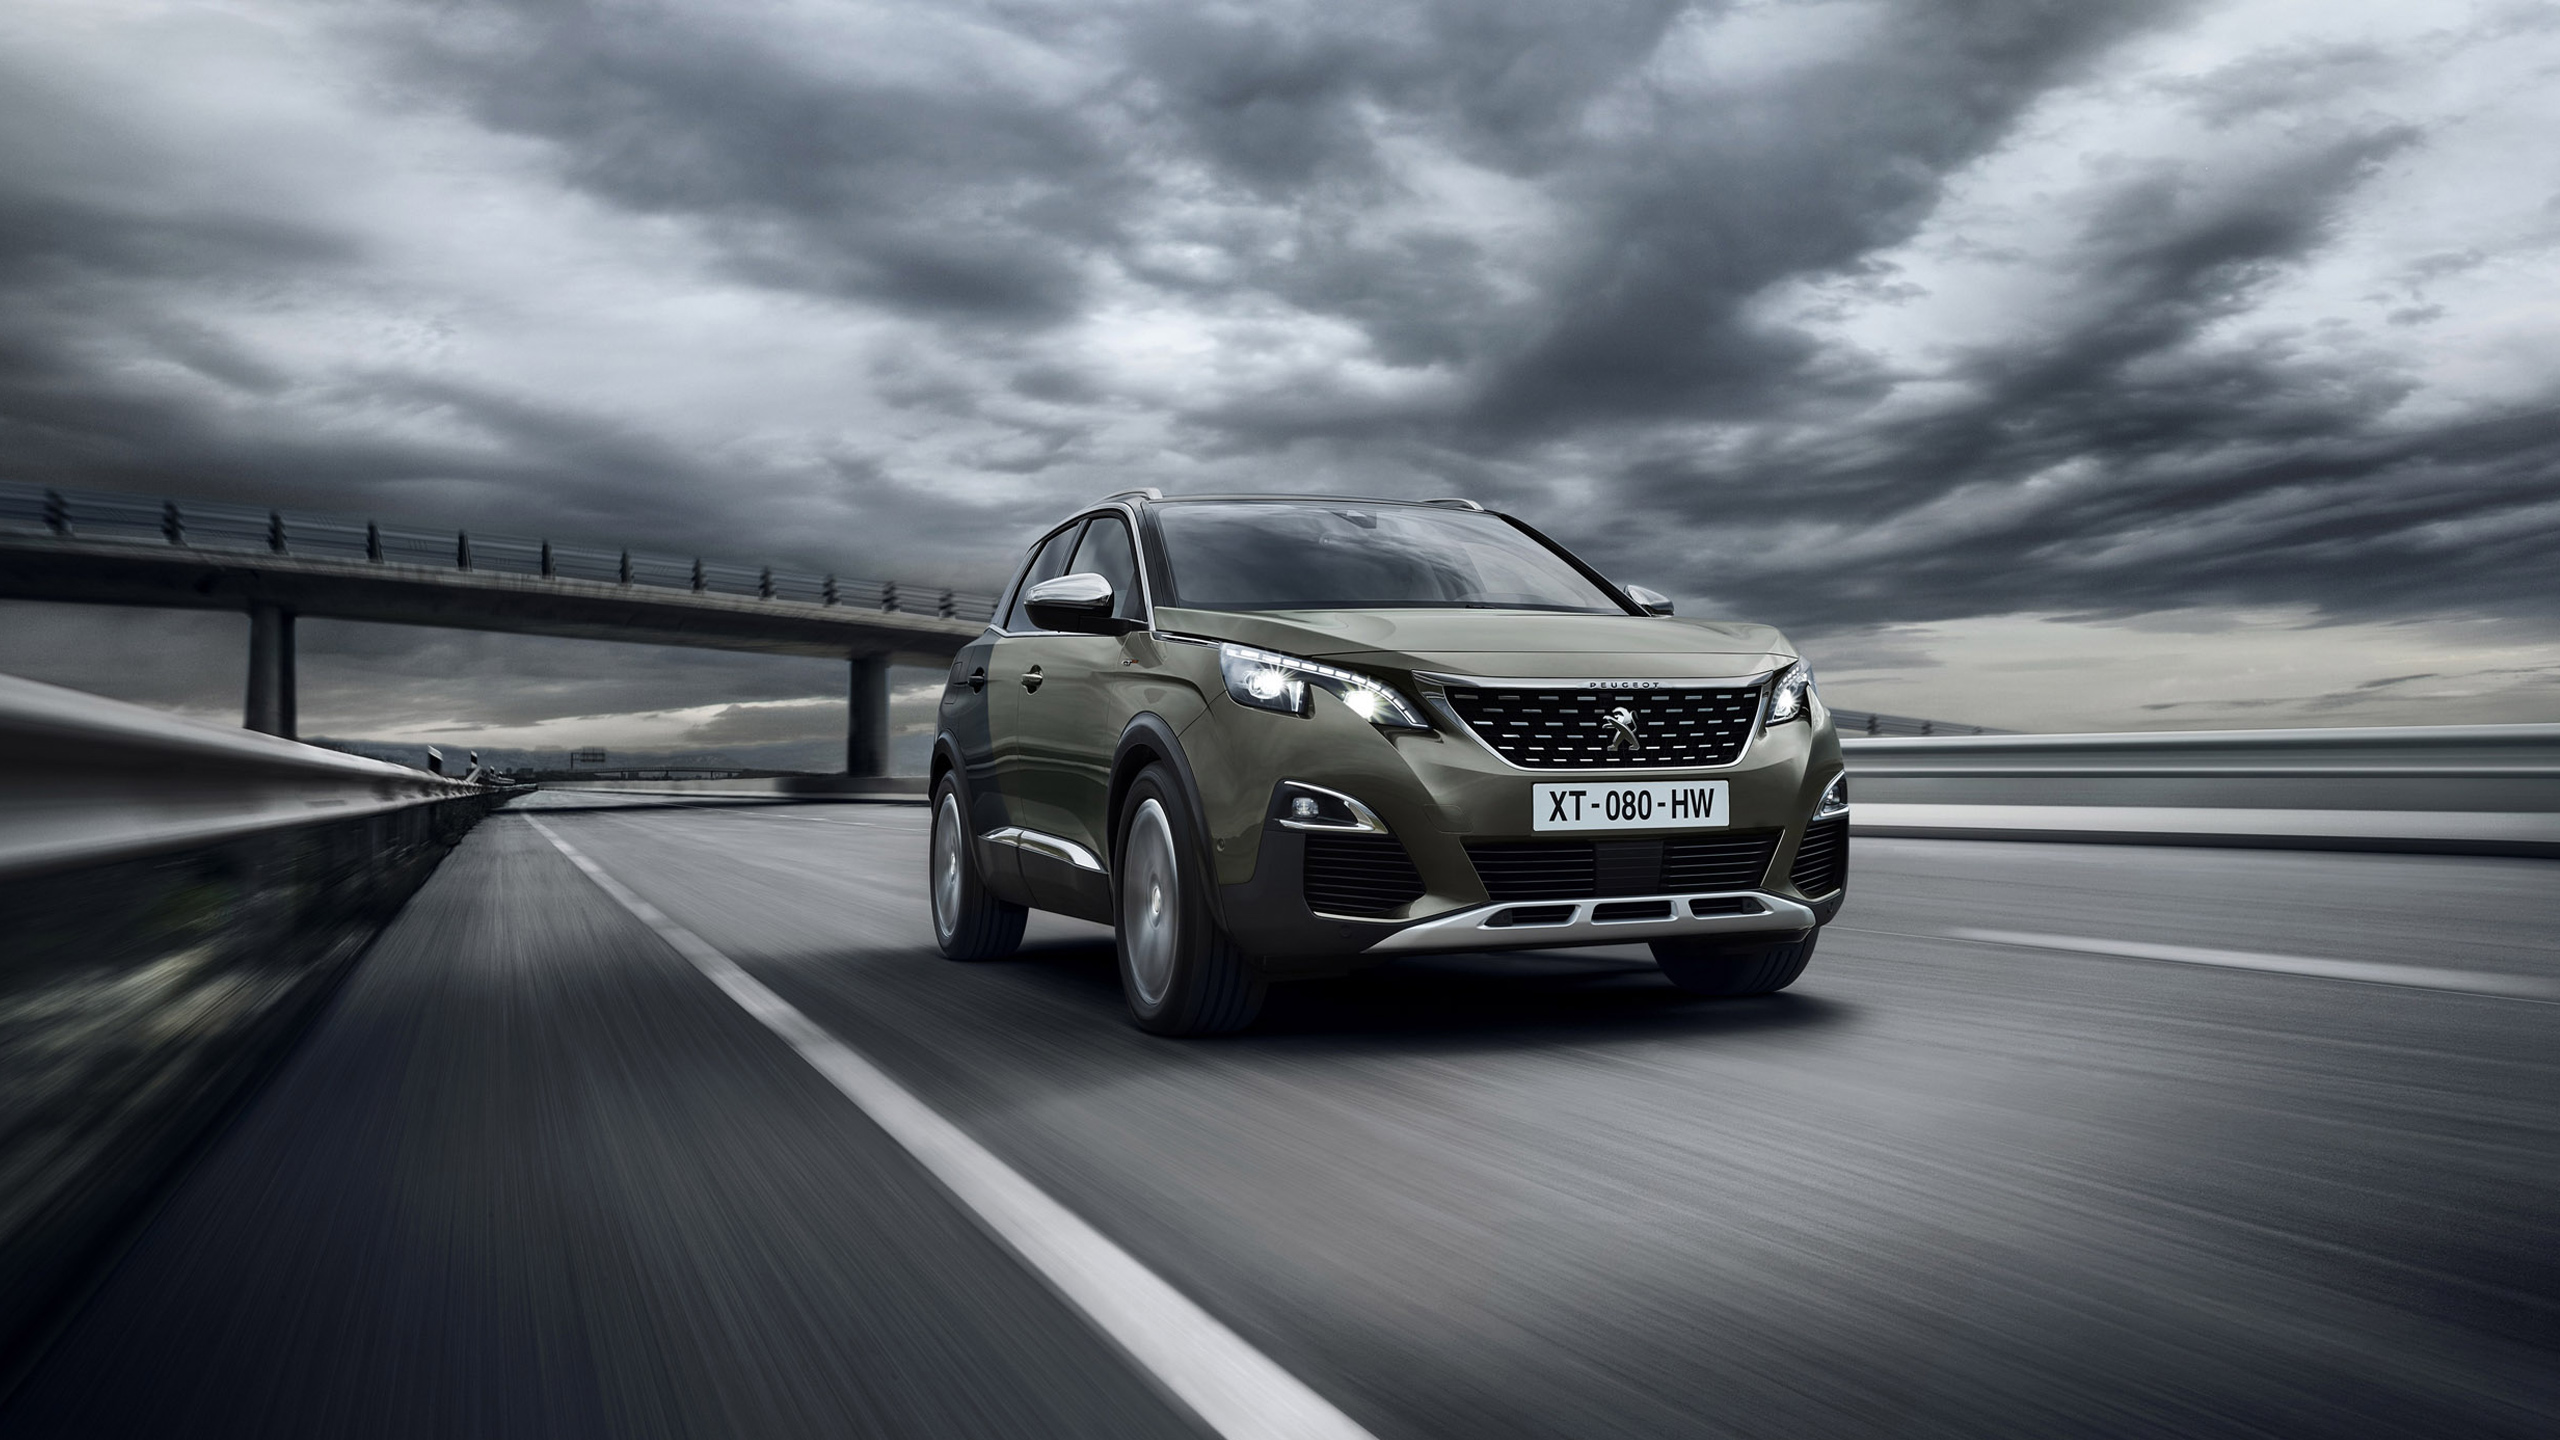 2016 peugeot 3008 gt wallpaper hd car wallpapers id 6638. Black Bedroom Furniture Sets. Home Design Ideas